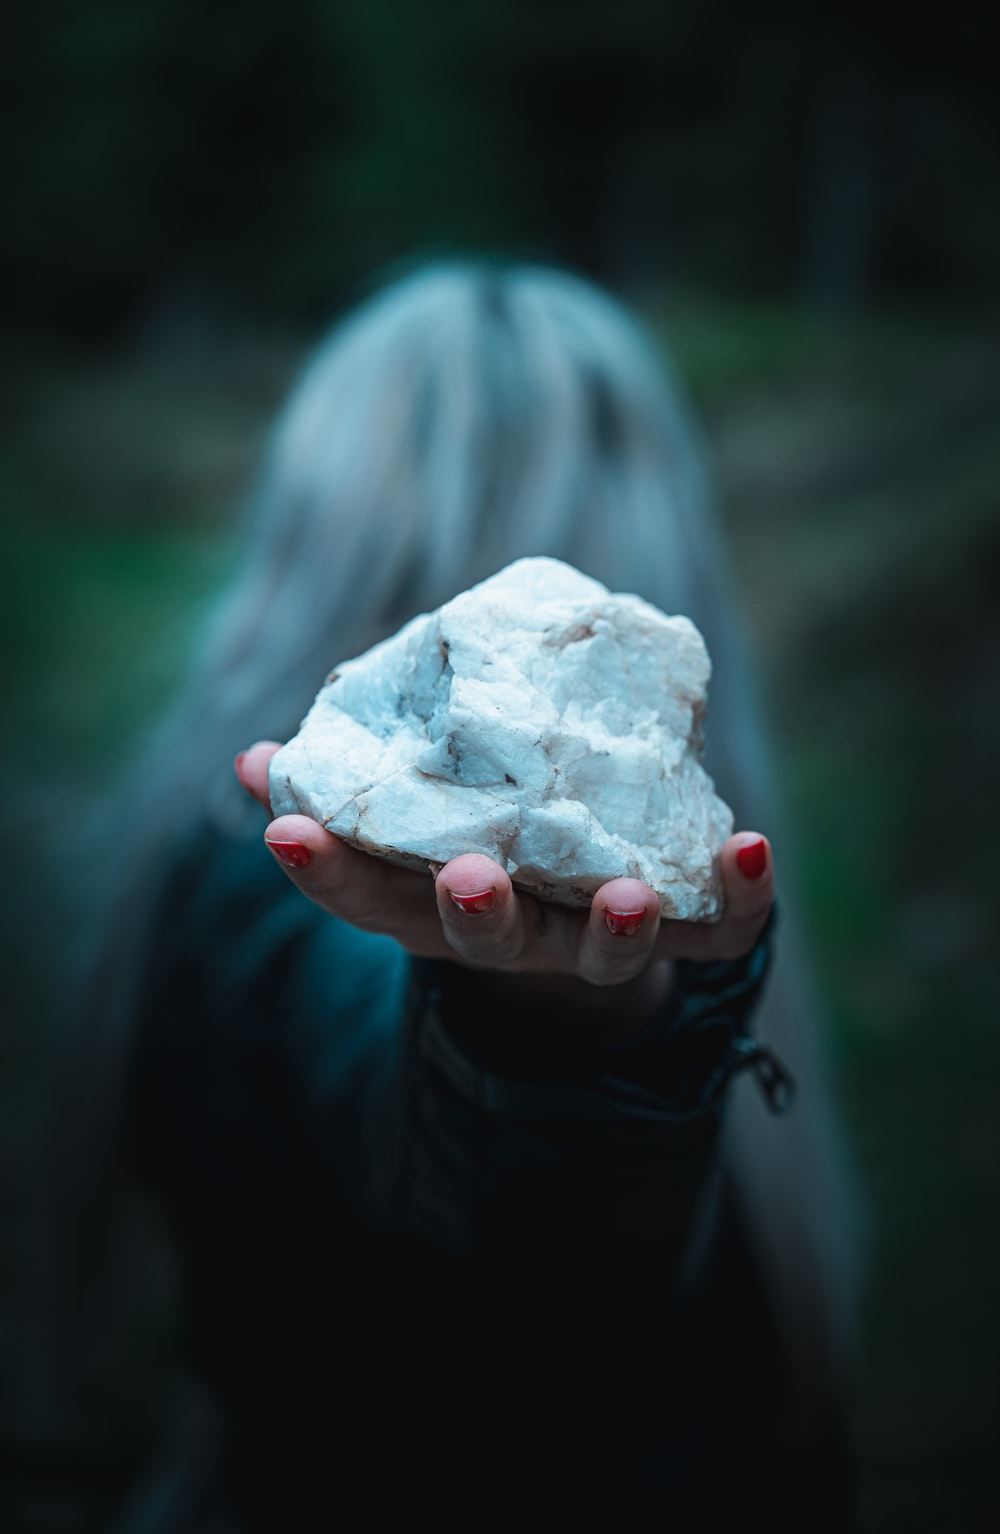 shallow focus photography of unknown person holding white stone